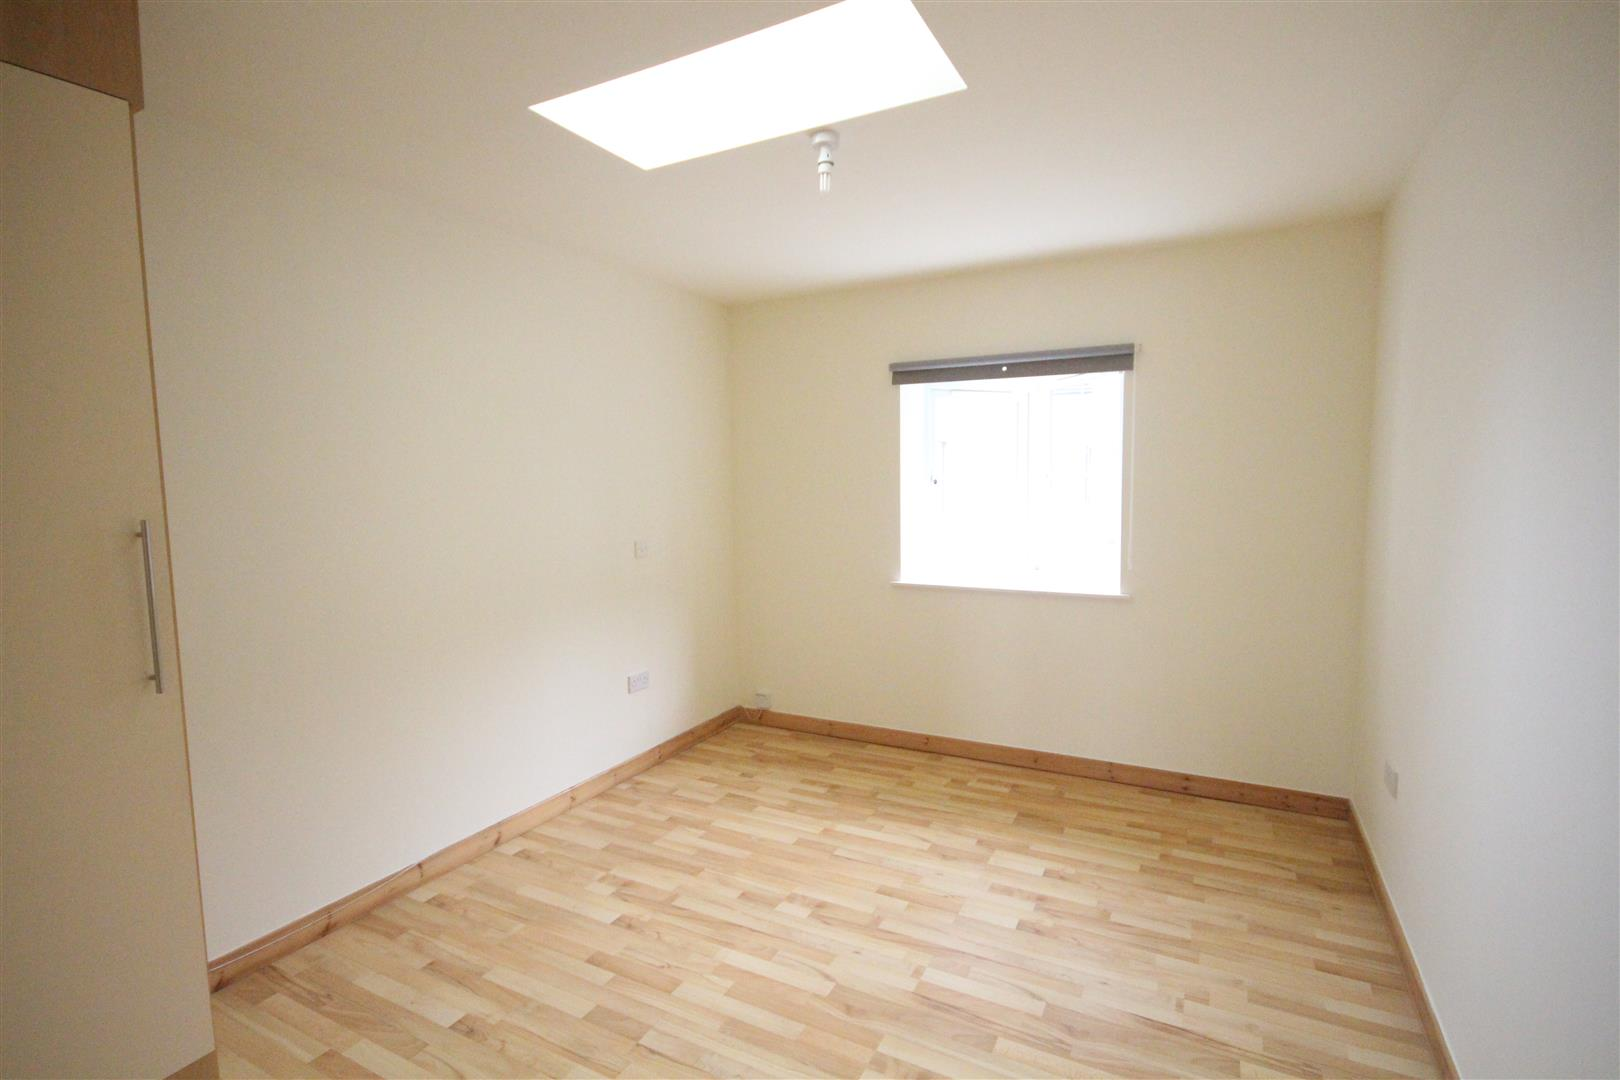 2 bedroom bungalow For Sale in Colne - IMG_0821.JPG